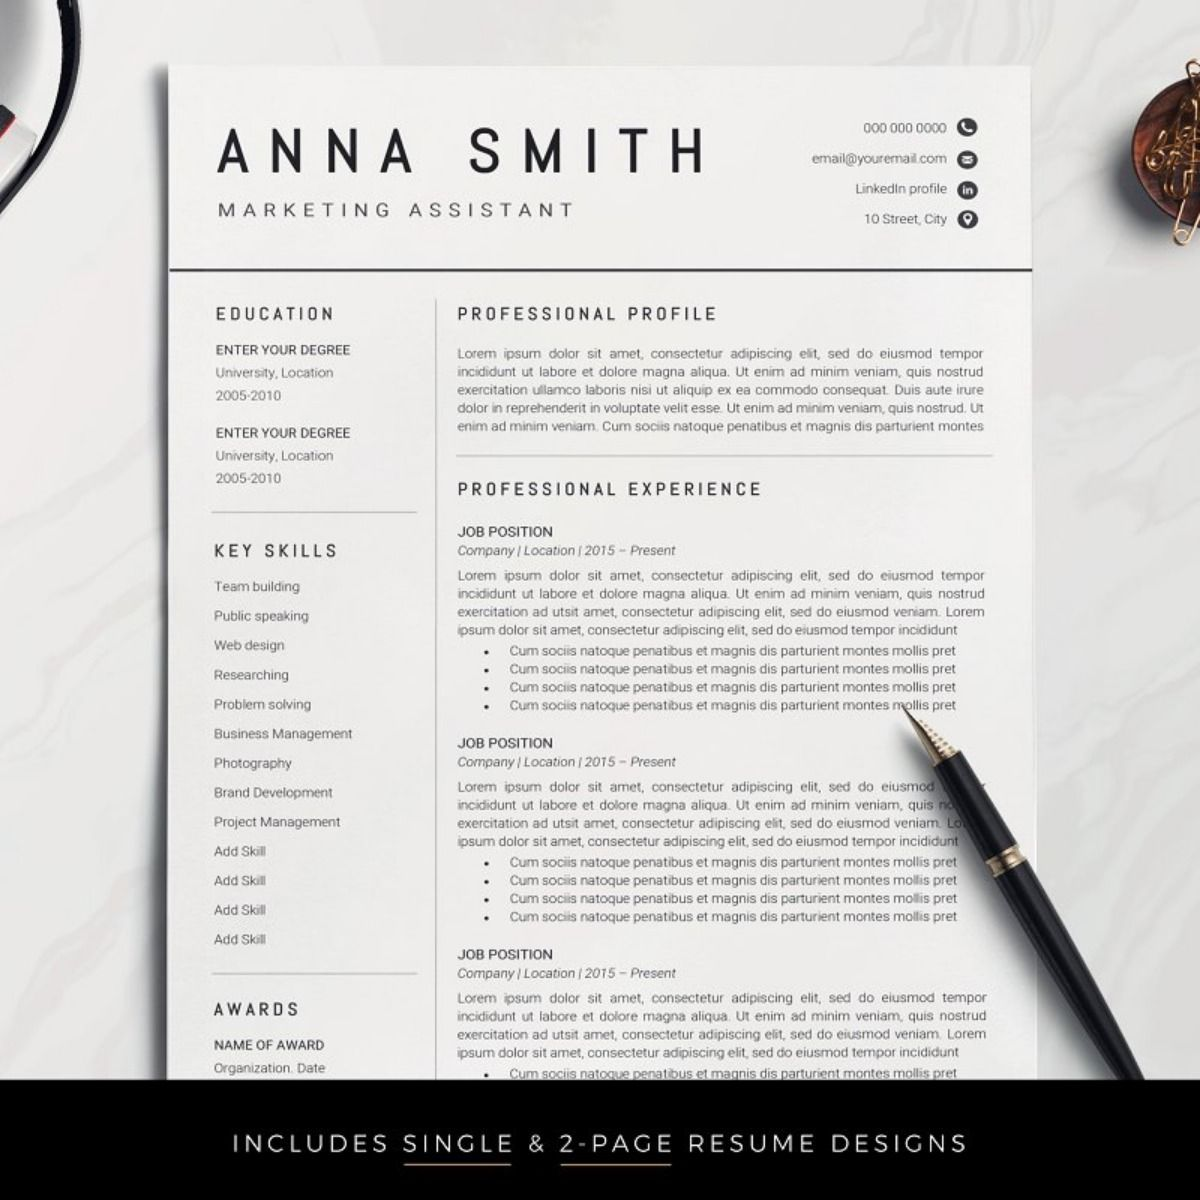 Resume Template / CV Resume template, One page resume